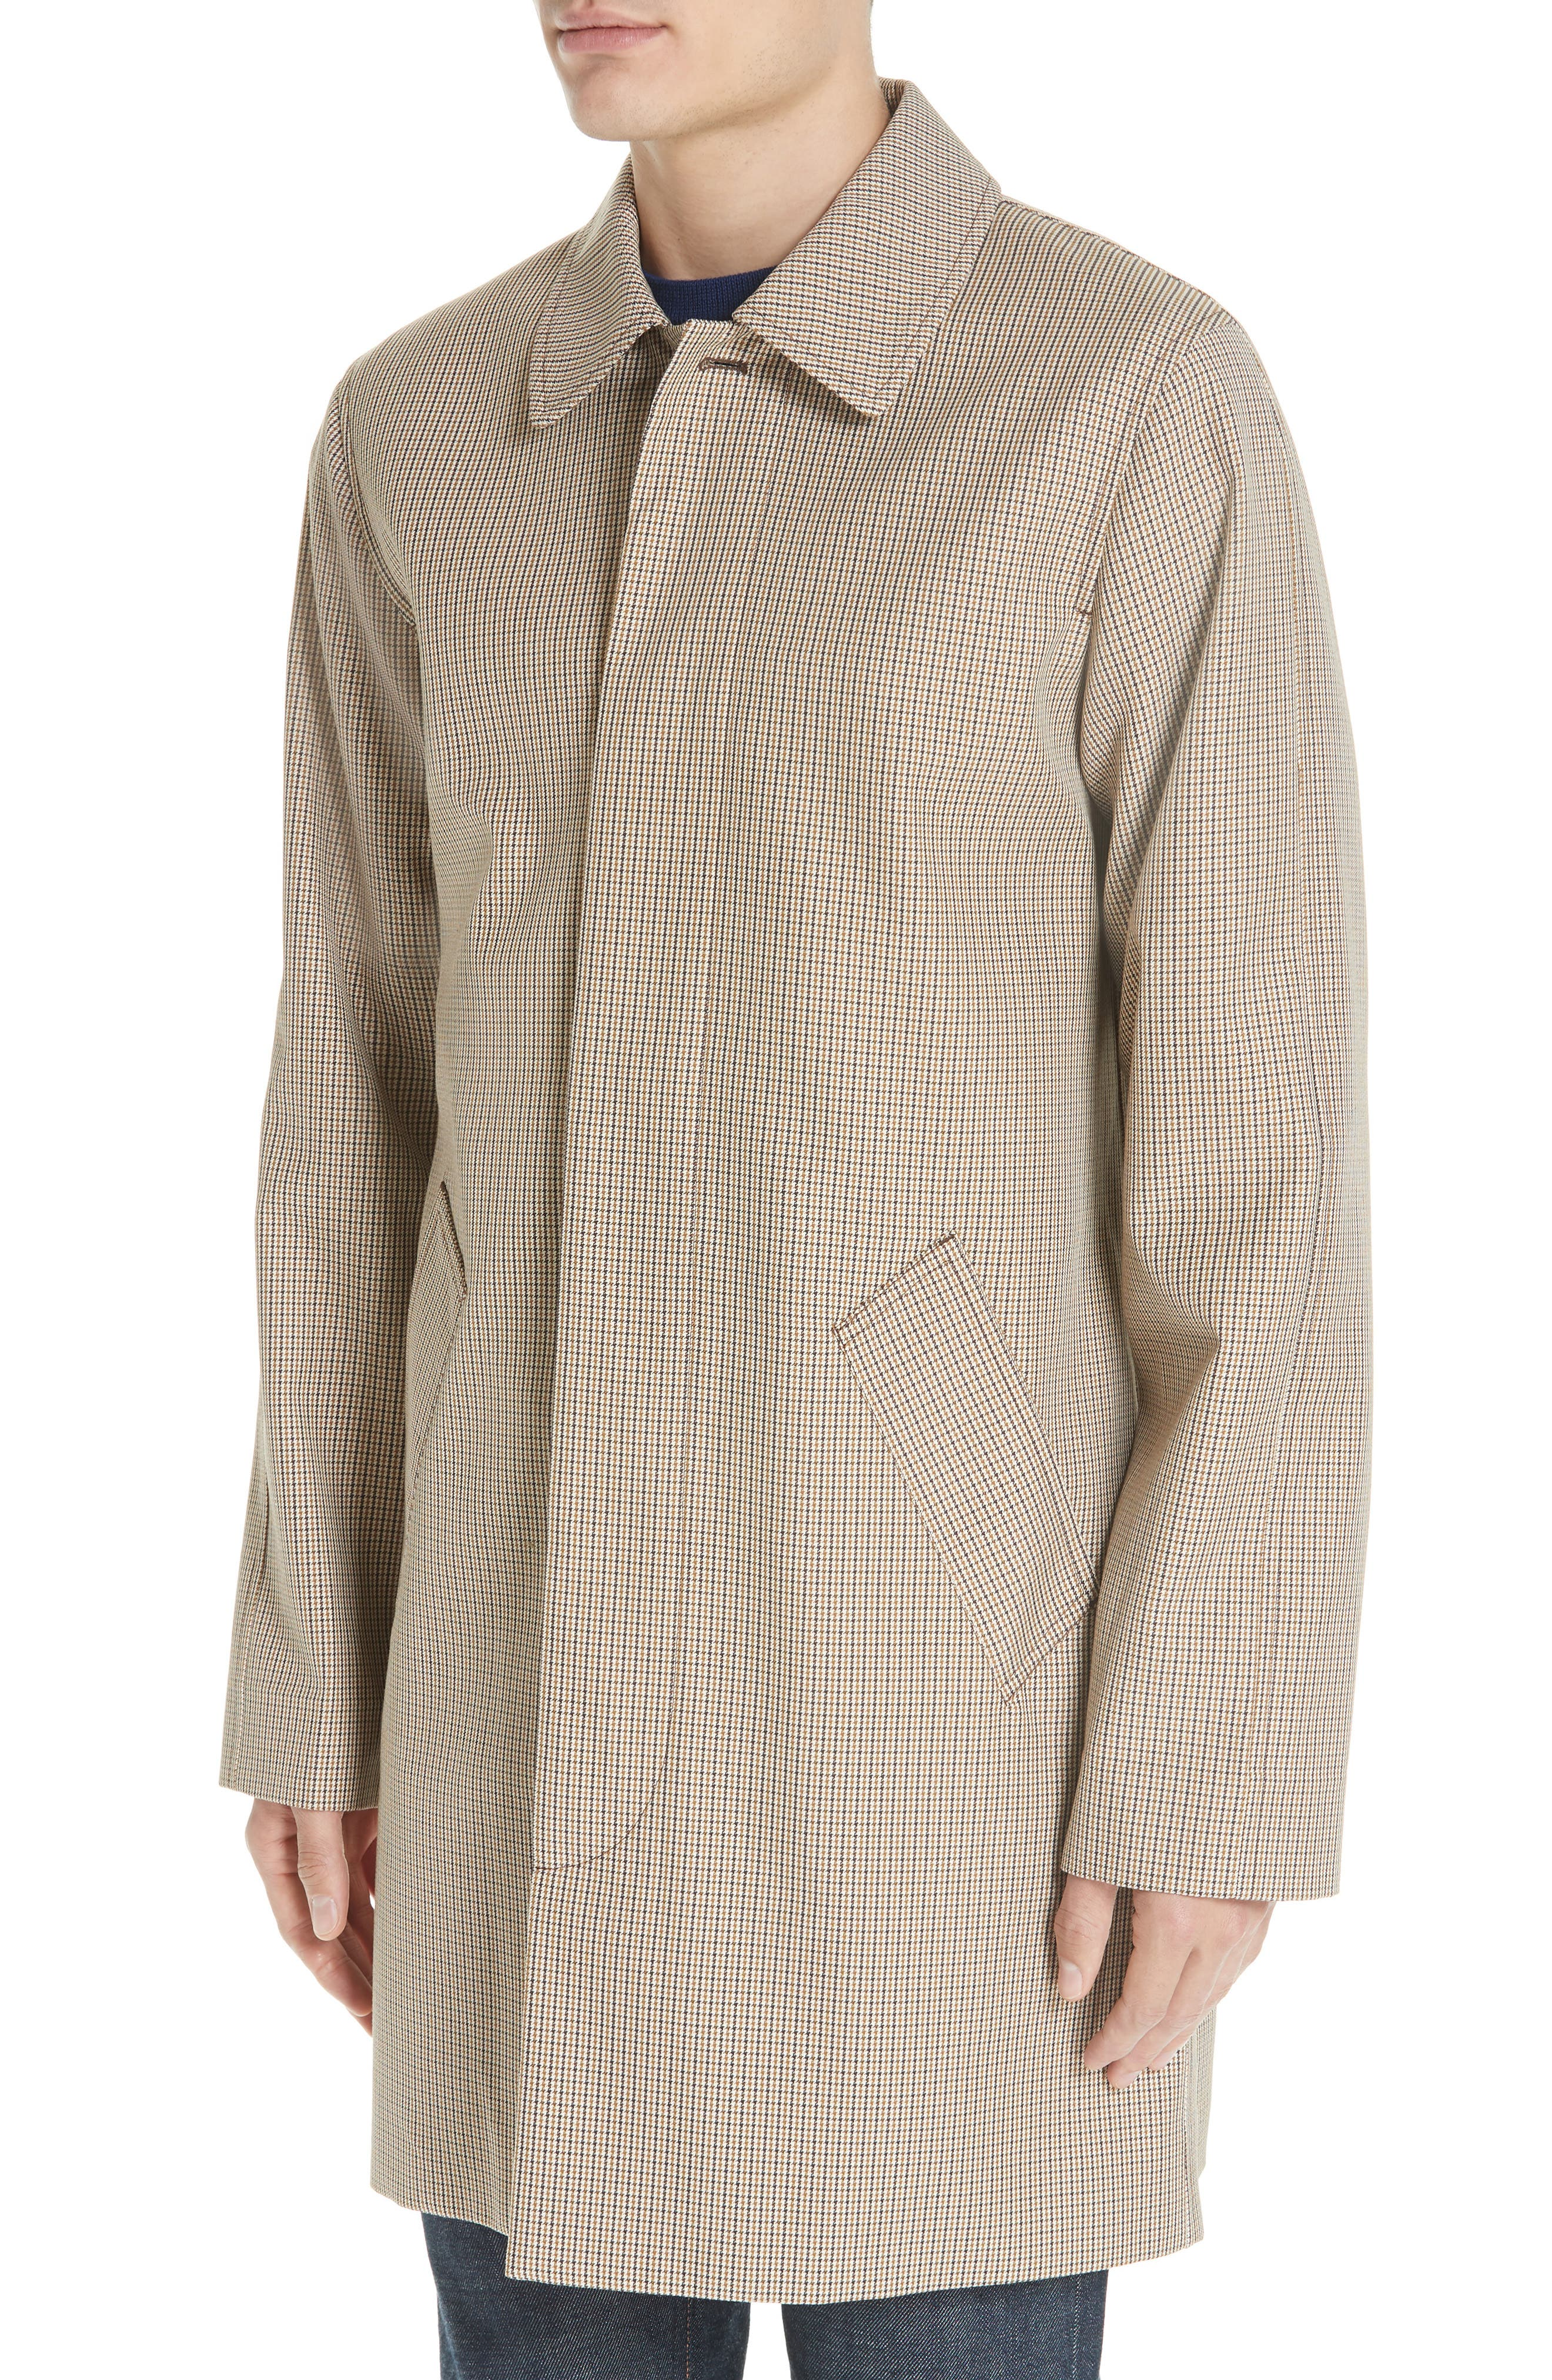 Puppytooth Check Mac Coat,                             Alternate thumbnail 4, color,                             251